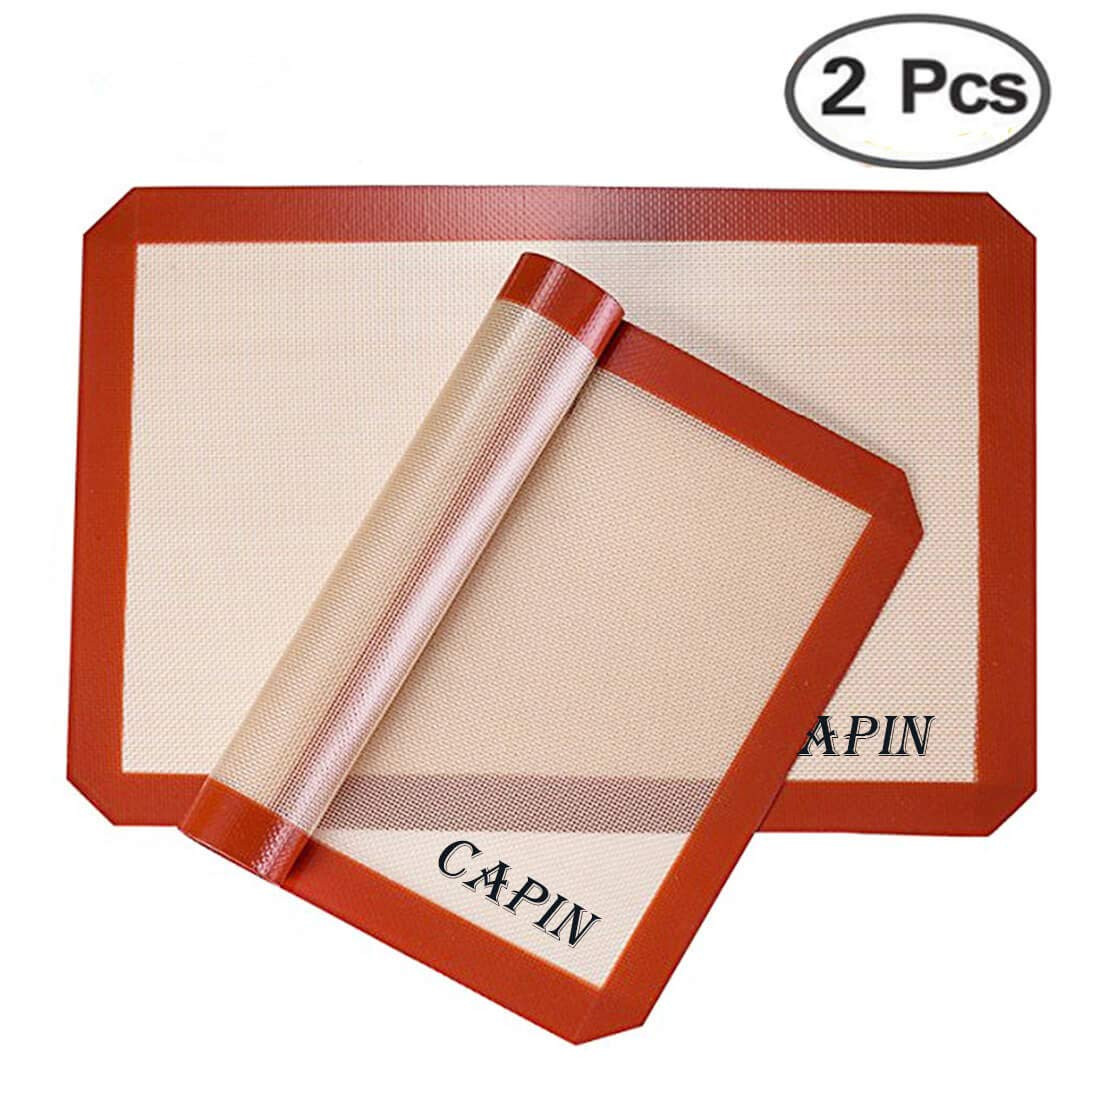 """CAPIN Non-stick Silicone Baking Mat Set, Half Sheet Size for Baking Cookies, Pastry, Macaron, Work Great with Oven (11-5/8"""" x 16-1/2"""", Red)"""